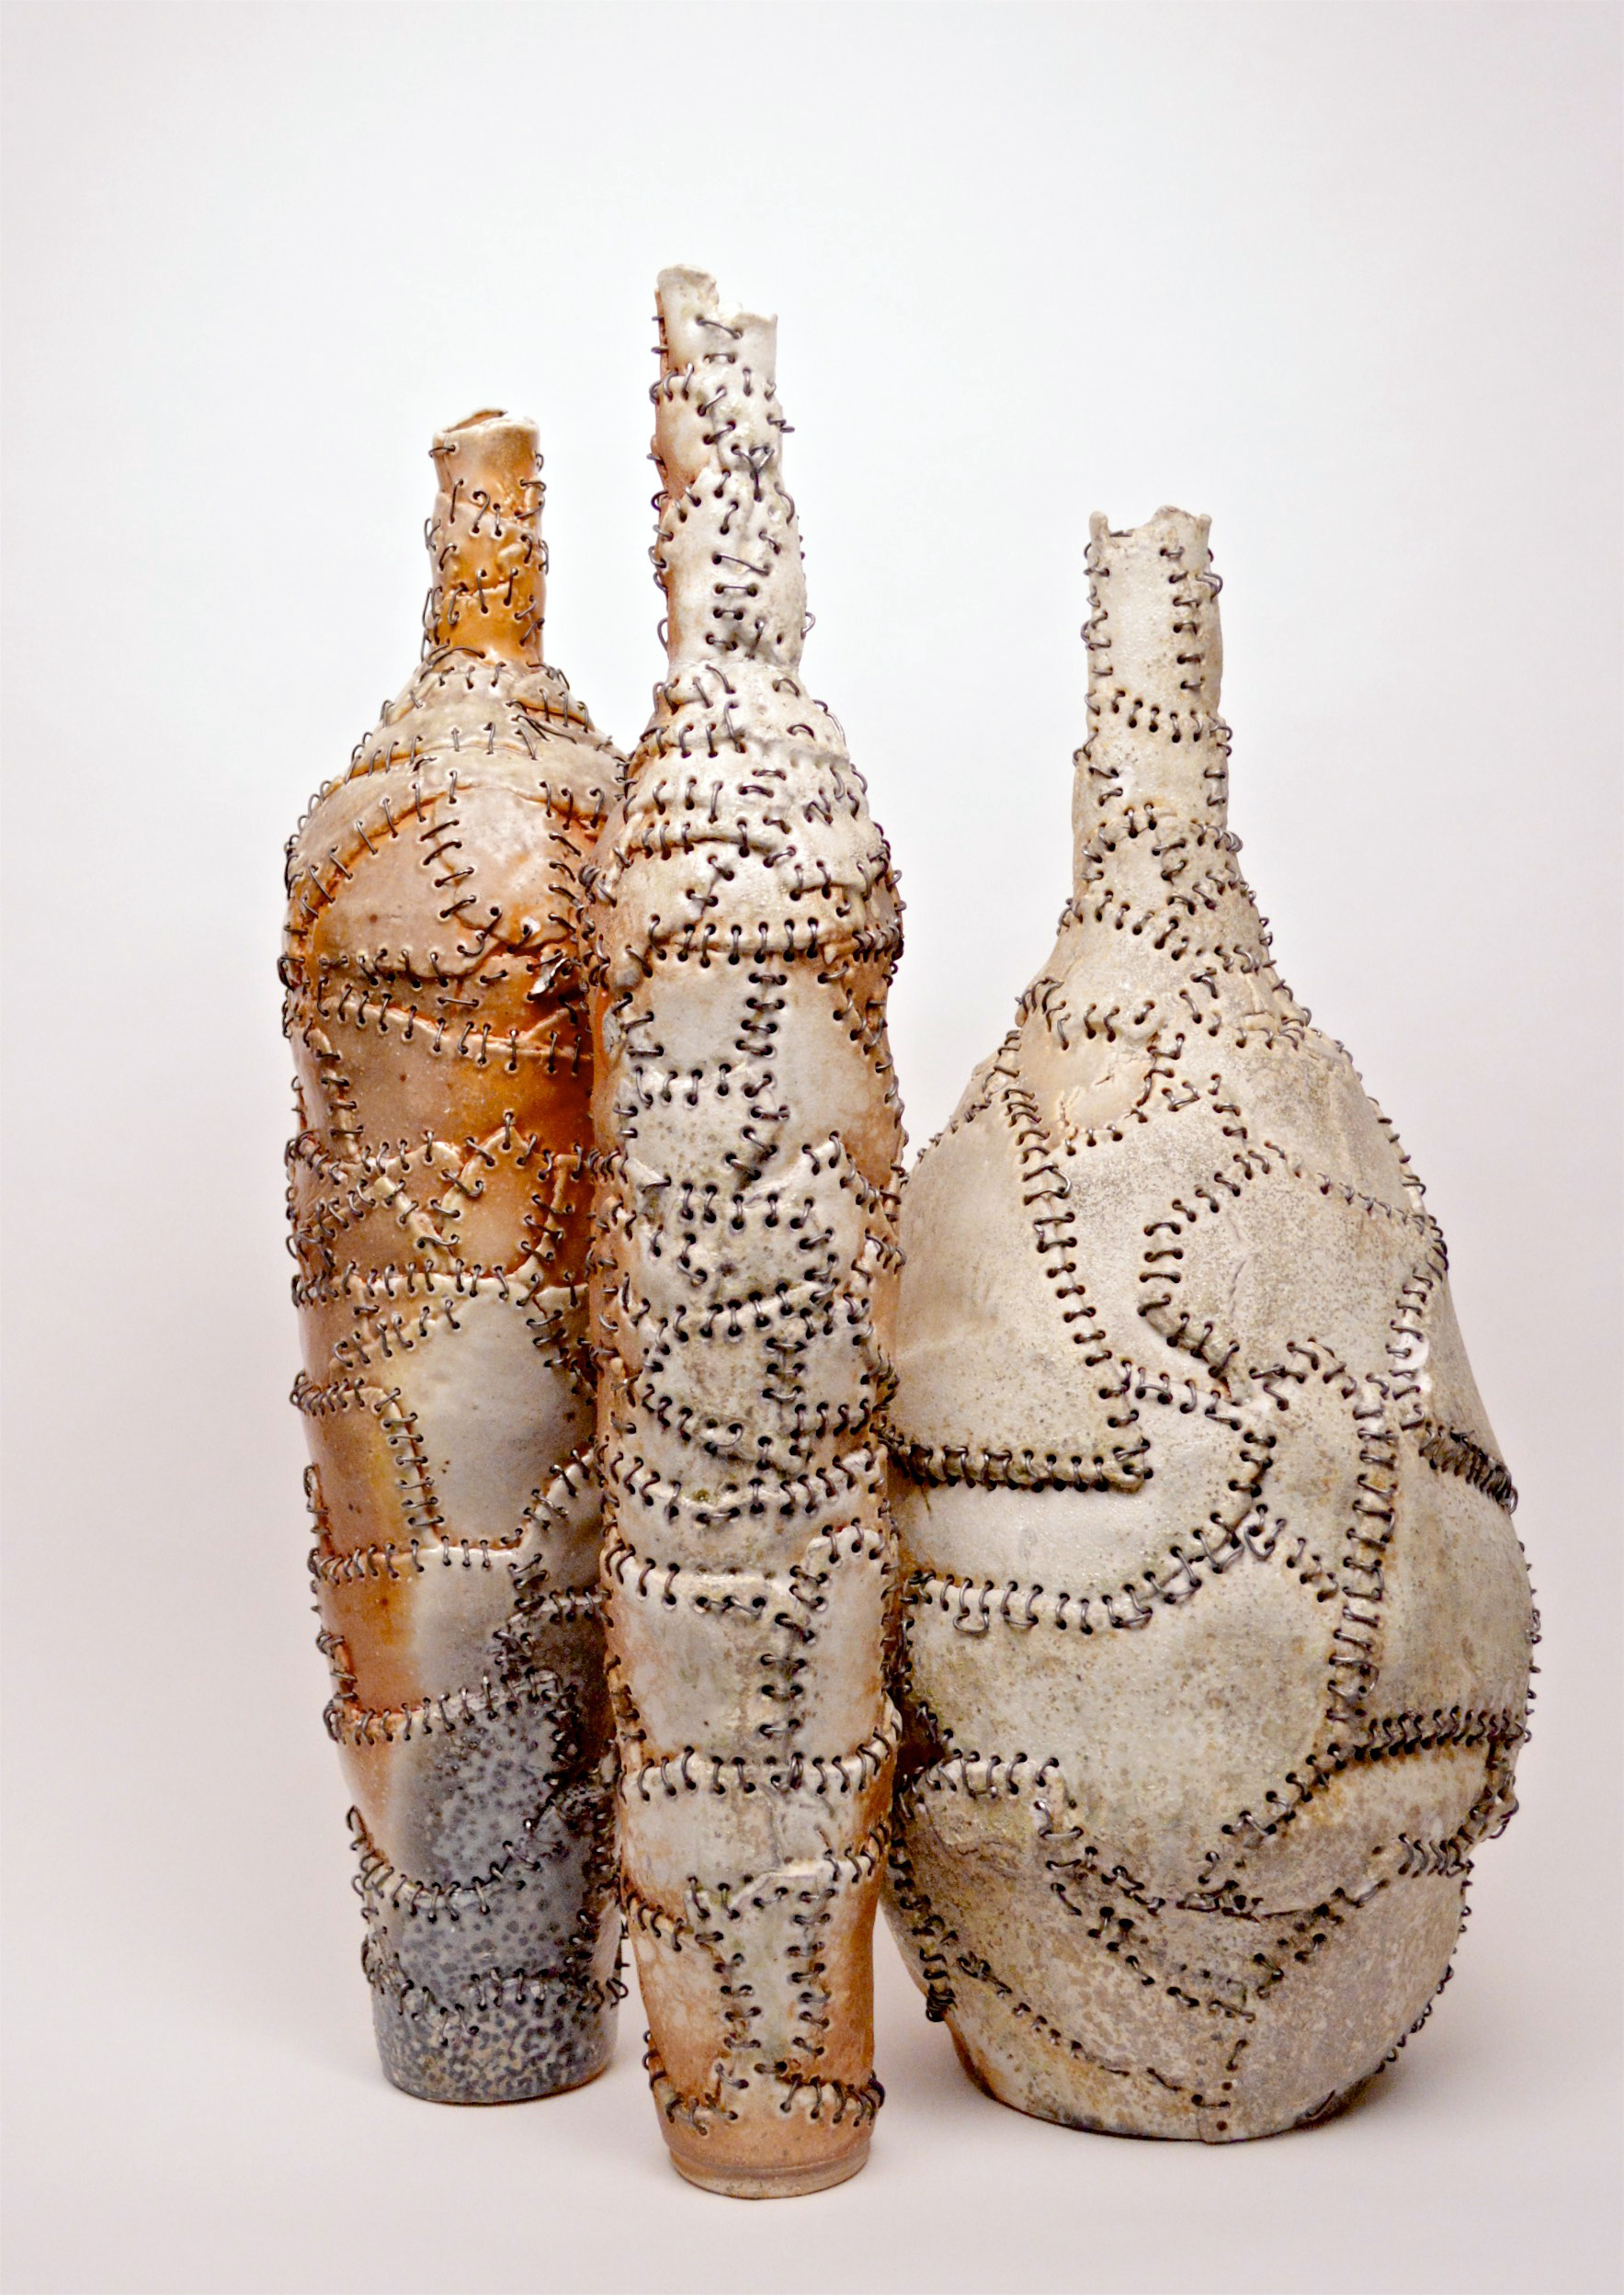 Patched Bottles